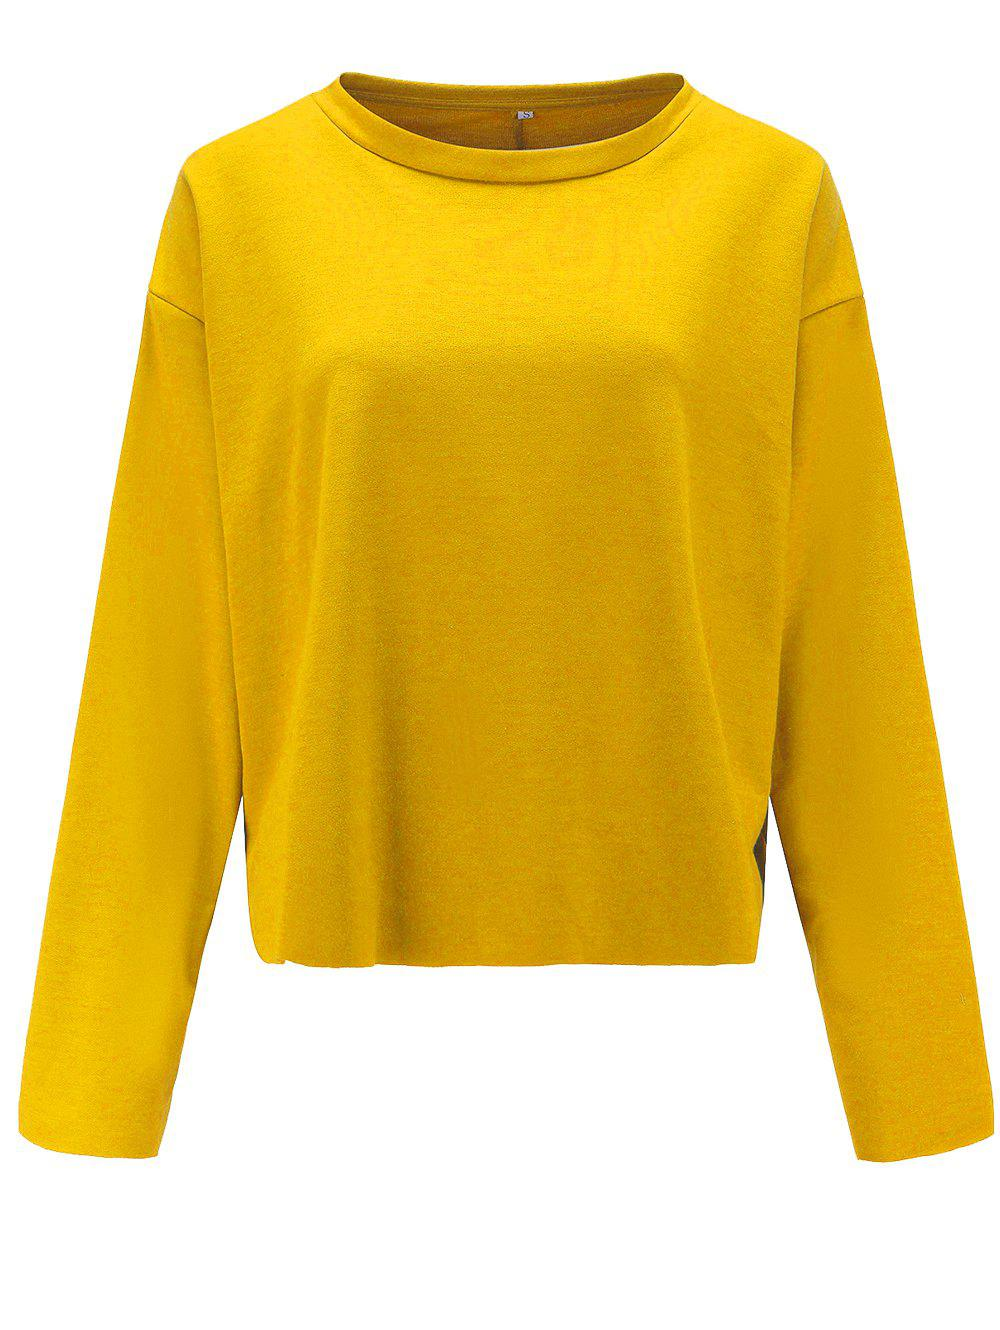 Affordable Womens Casual Round Neck  Sweatshirt  Long Sleeve Pullover Tops